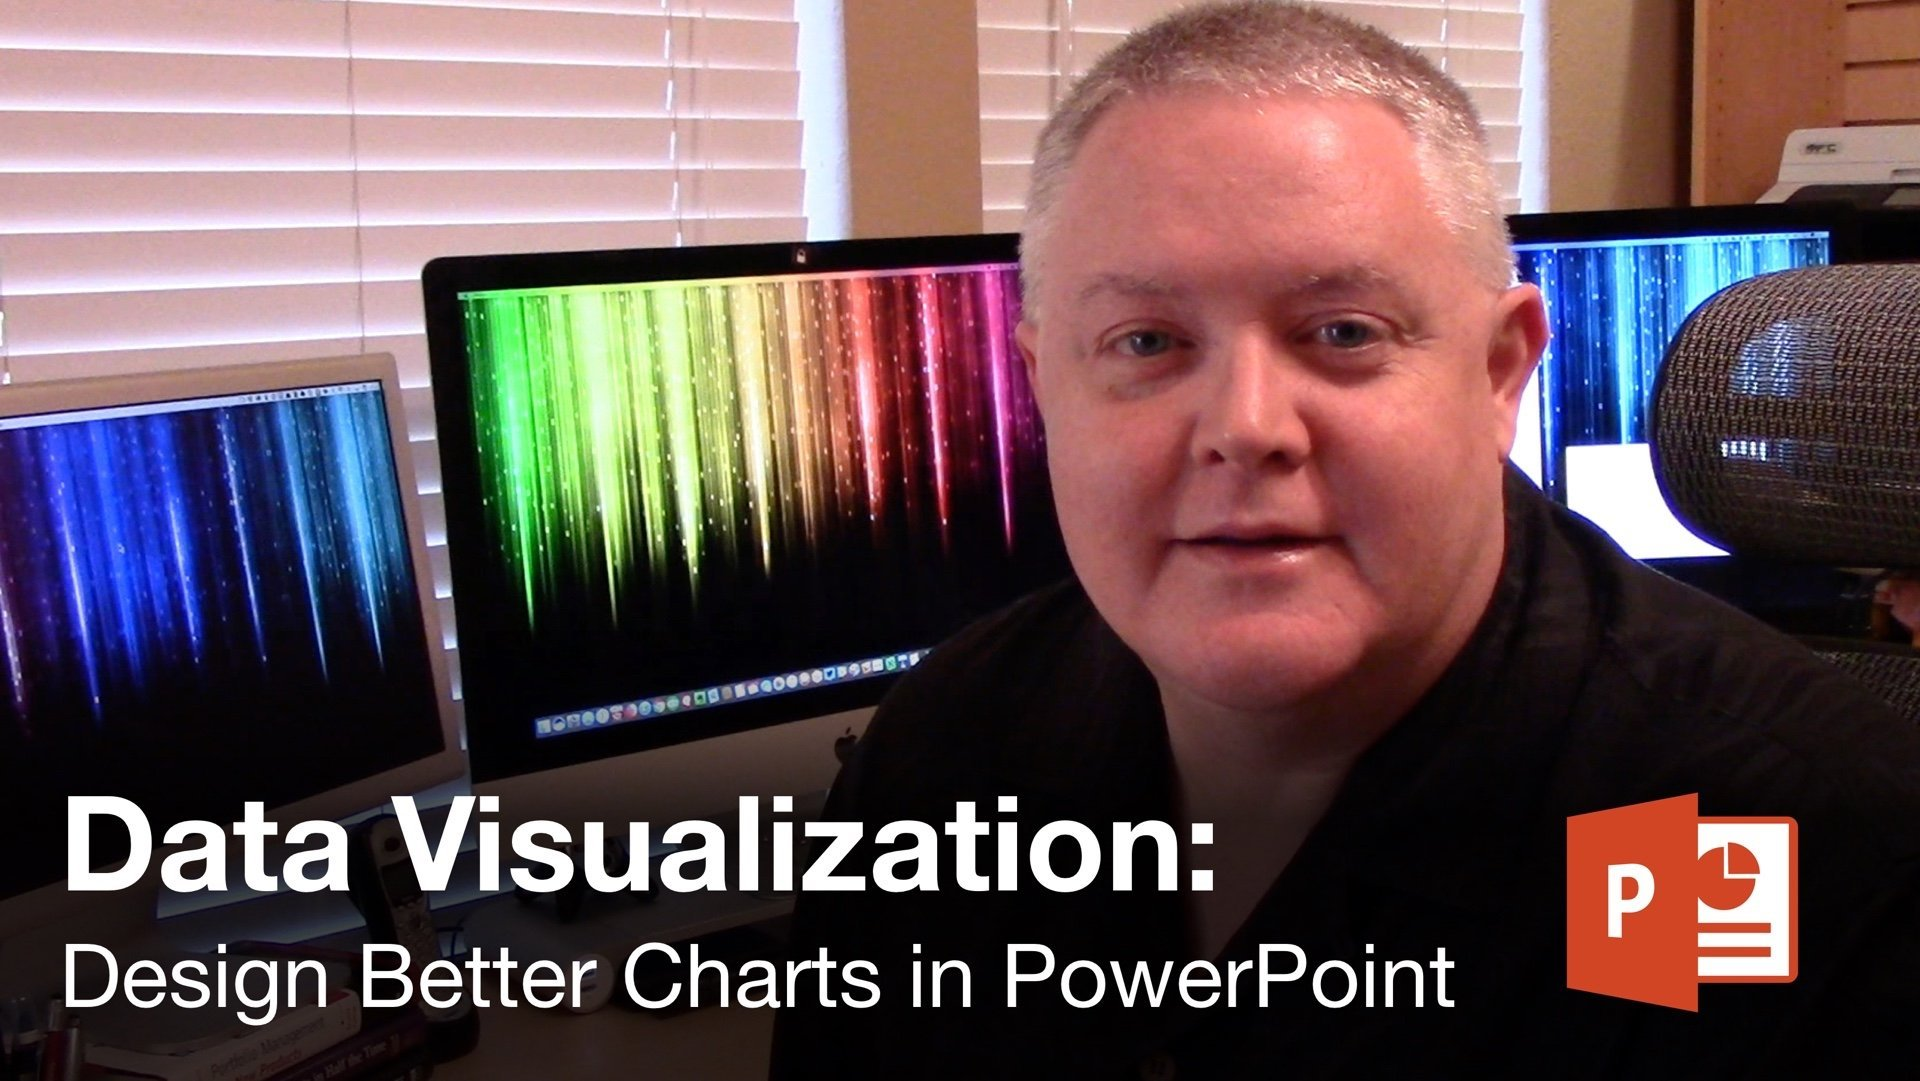 Data Visualization: Design Better Charts in PowerPoint